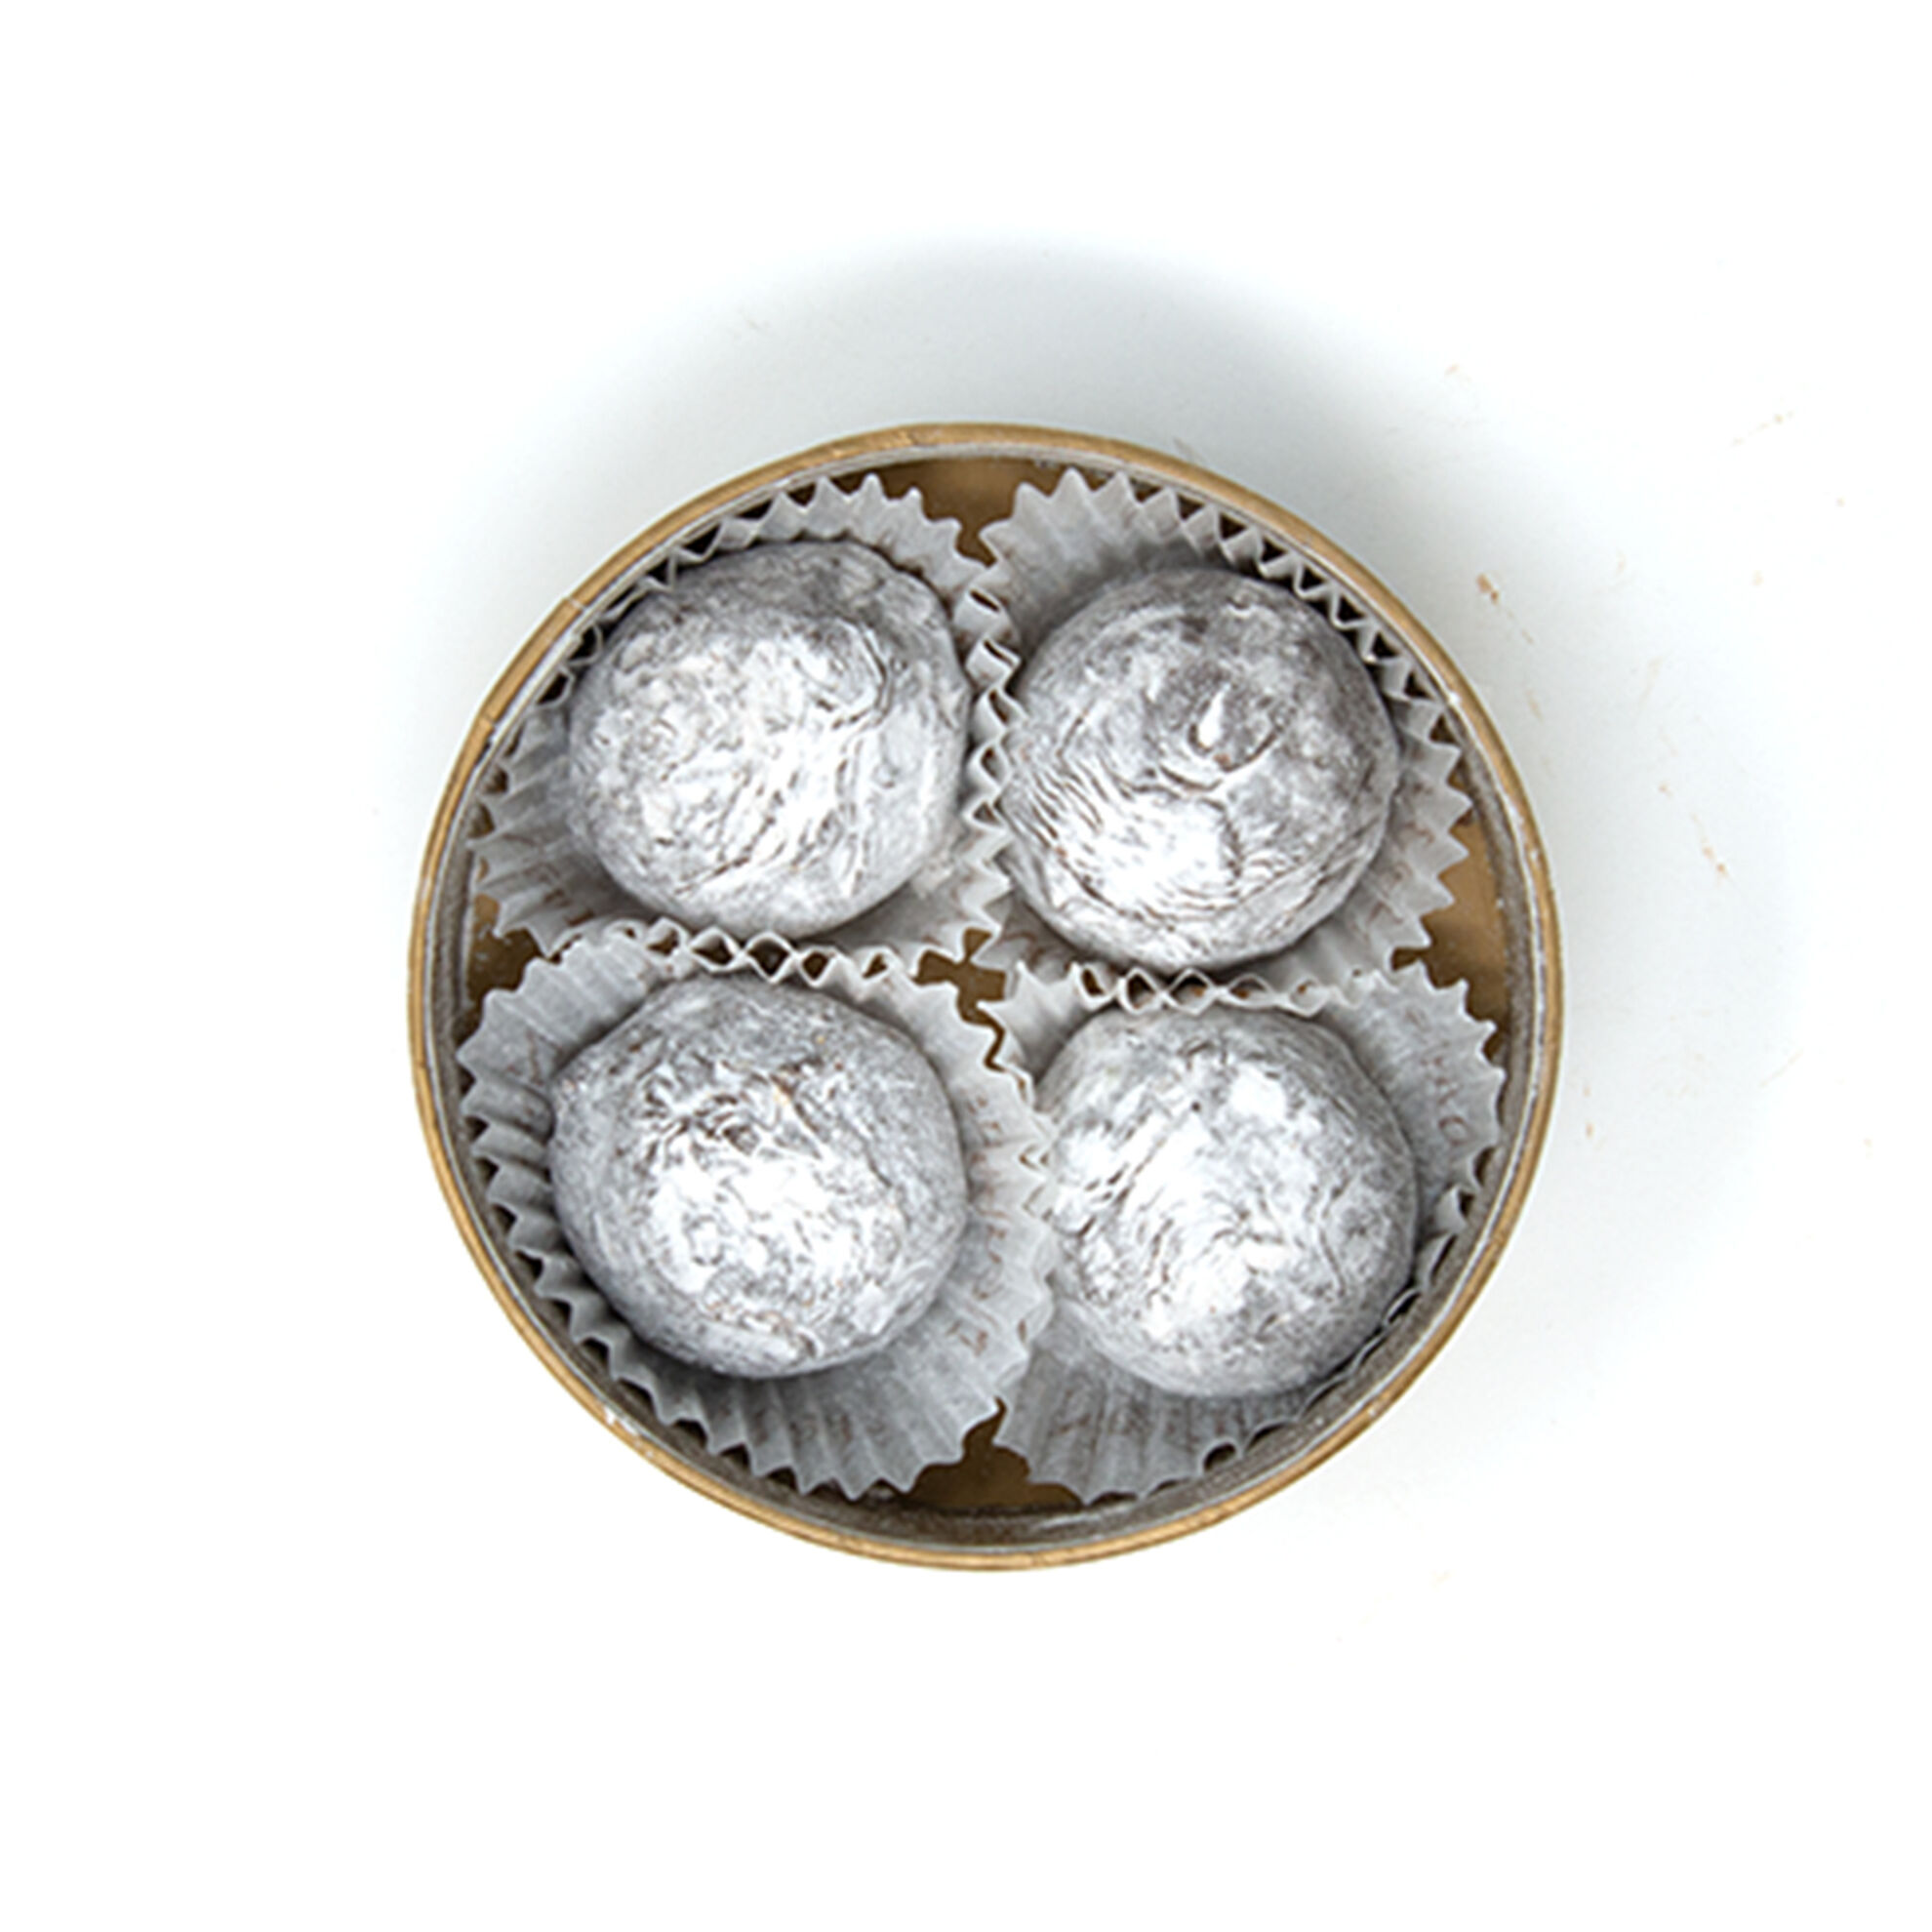 Champagne Truffles in Round Box 4 pcs image number 21